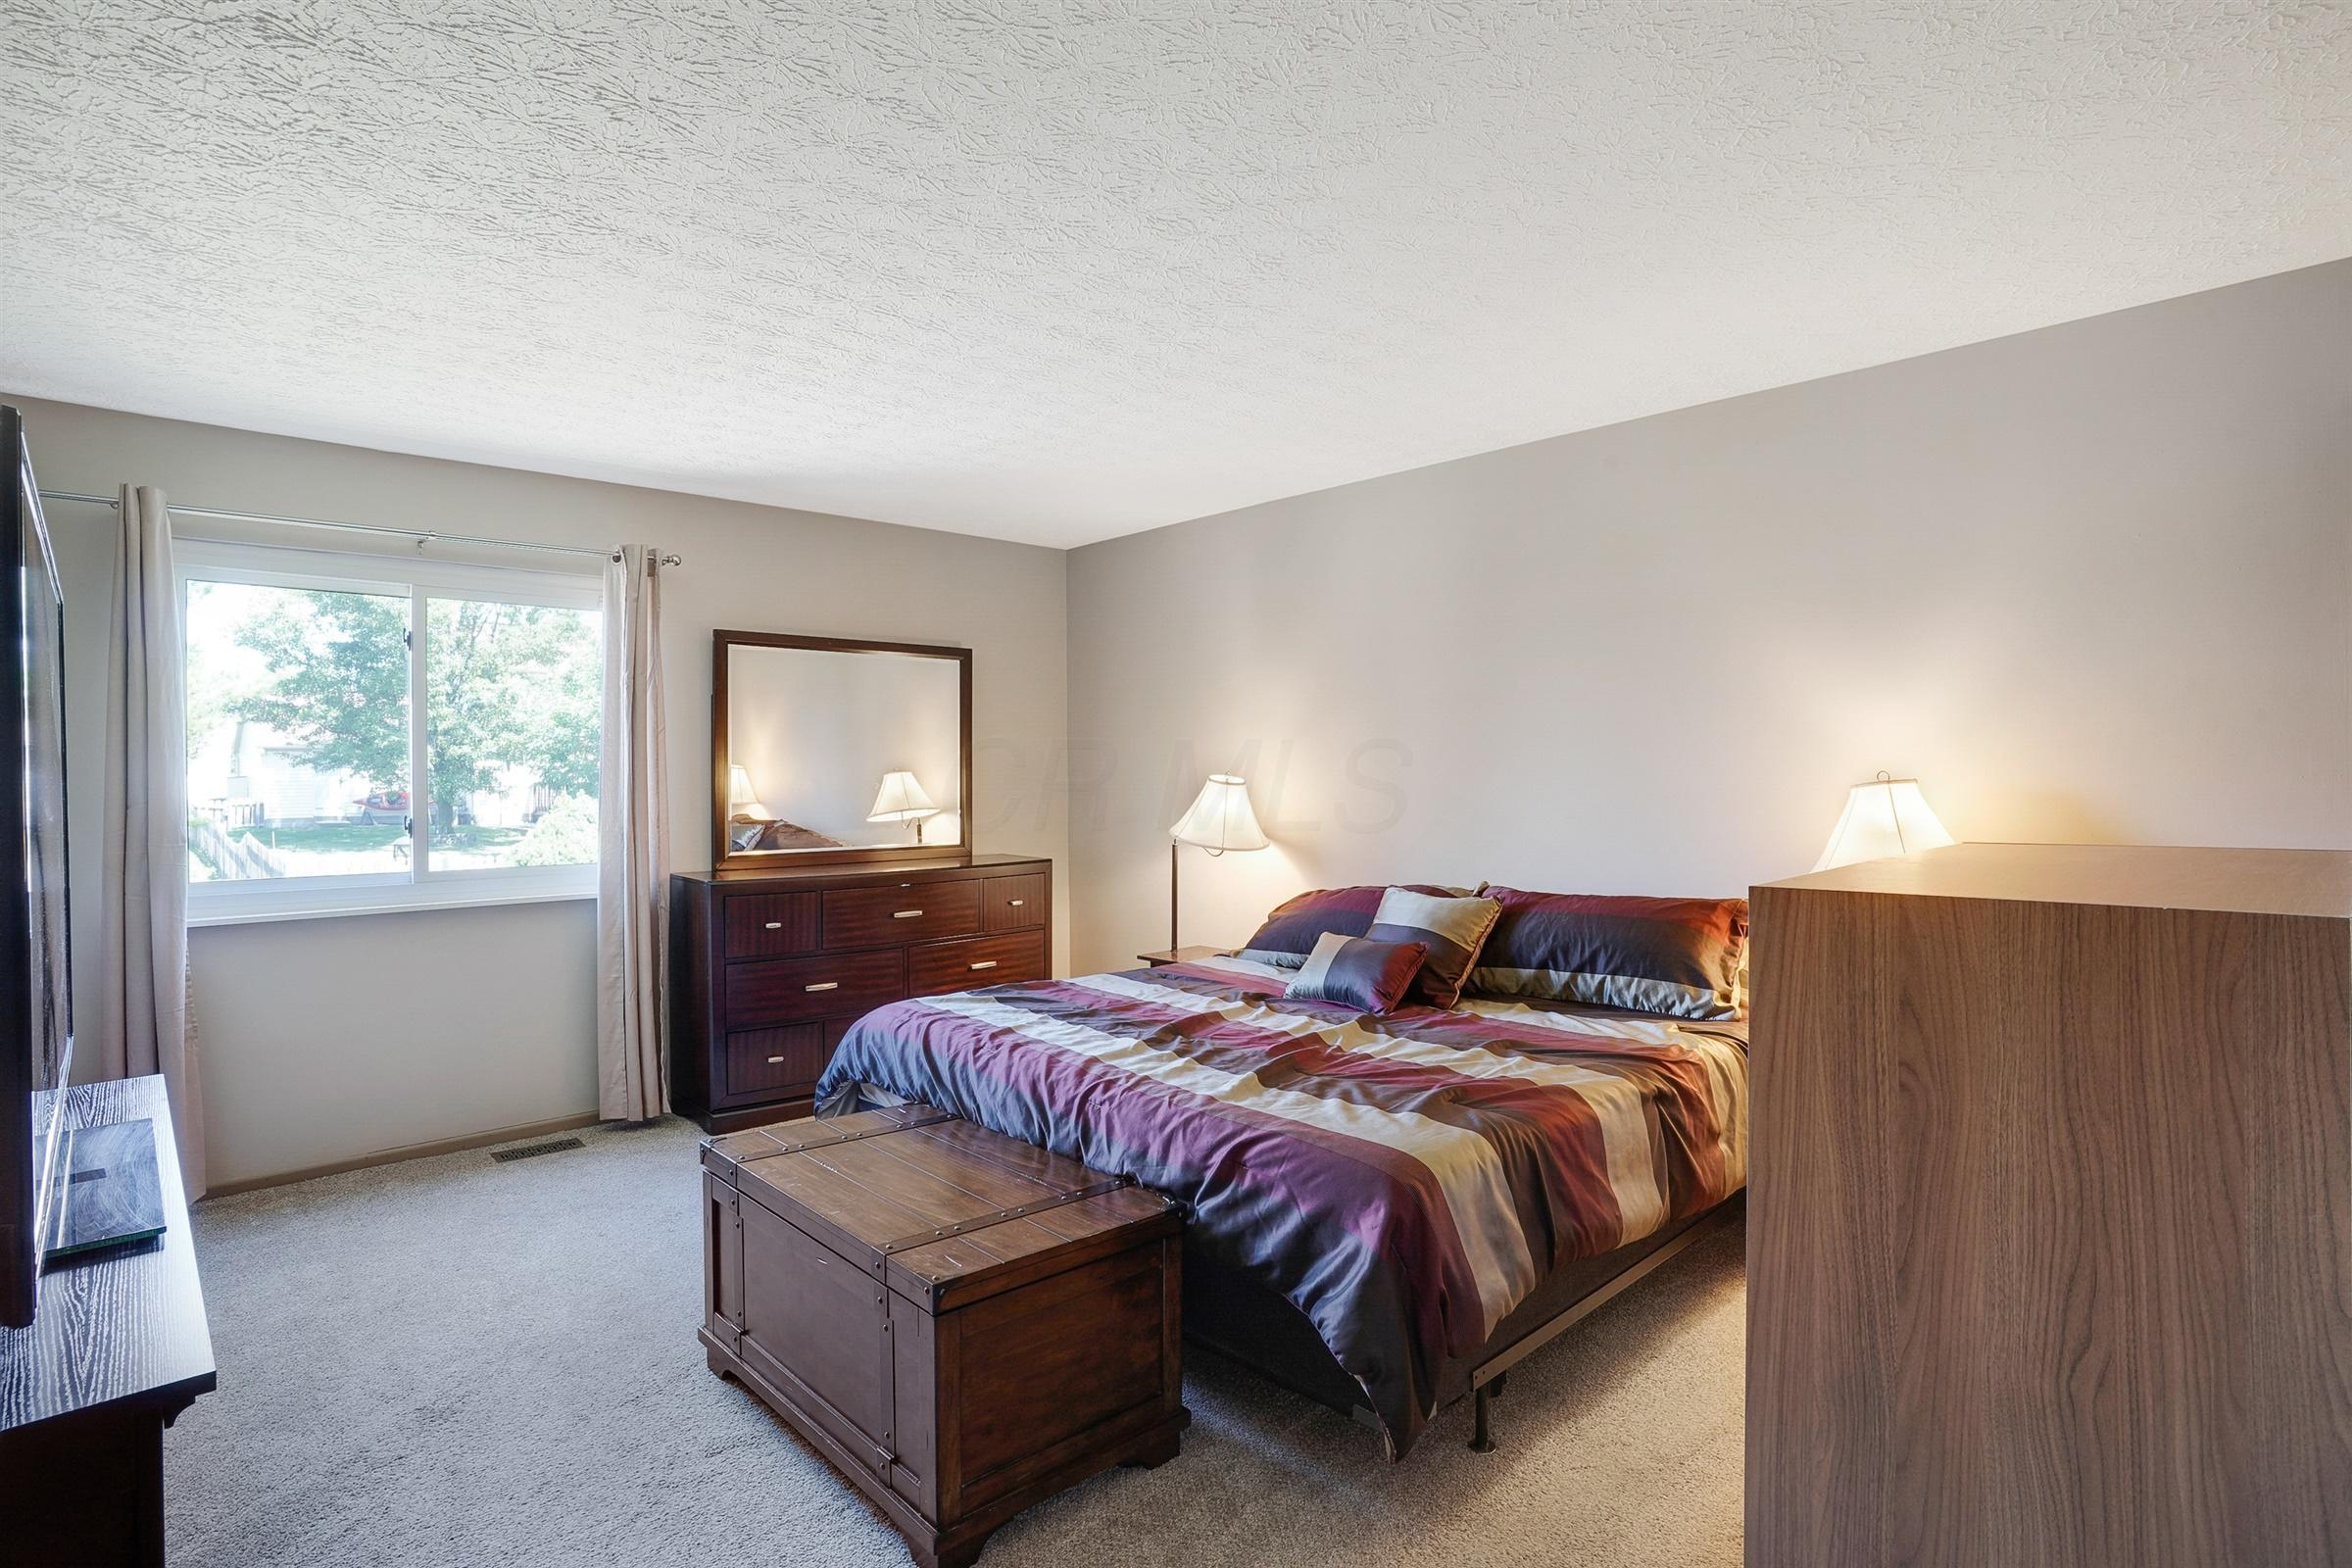 4968 Shady Oak Drive, Hilliard, Ohio 43026, 3 Bedrooms Bedrooms, ,1 BathroomBathrooms,Residential,For Sale,Shady Oak,220025305